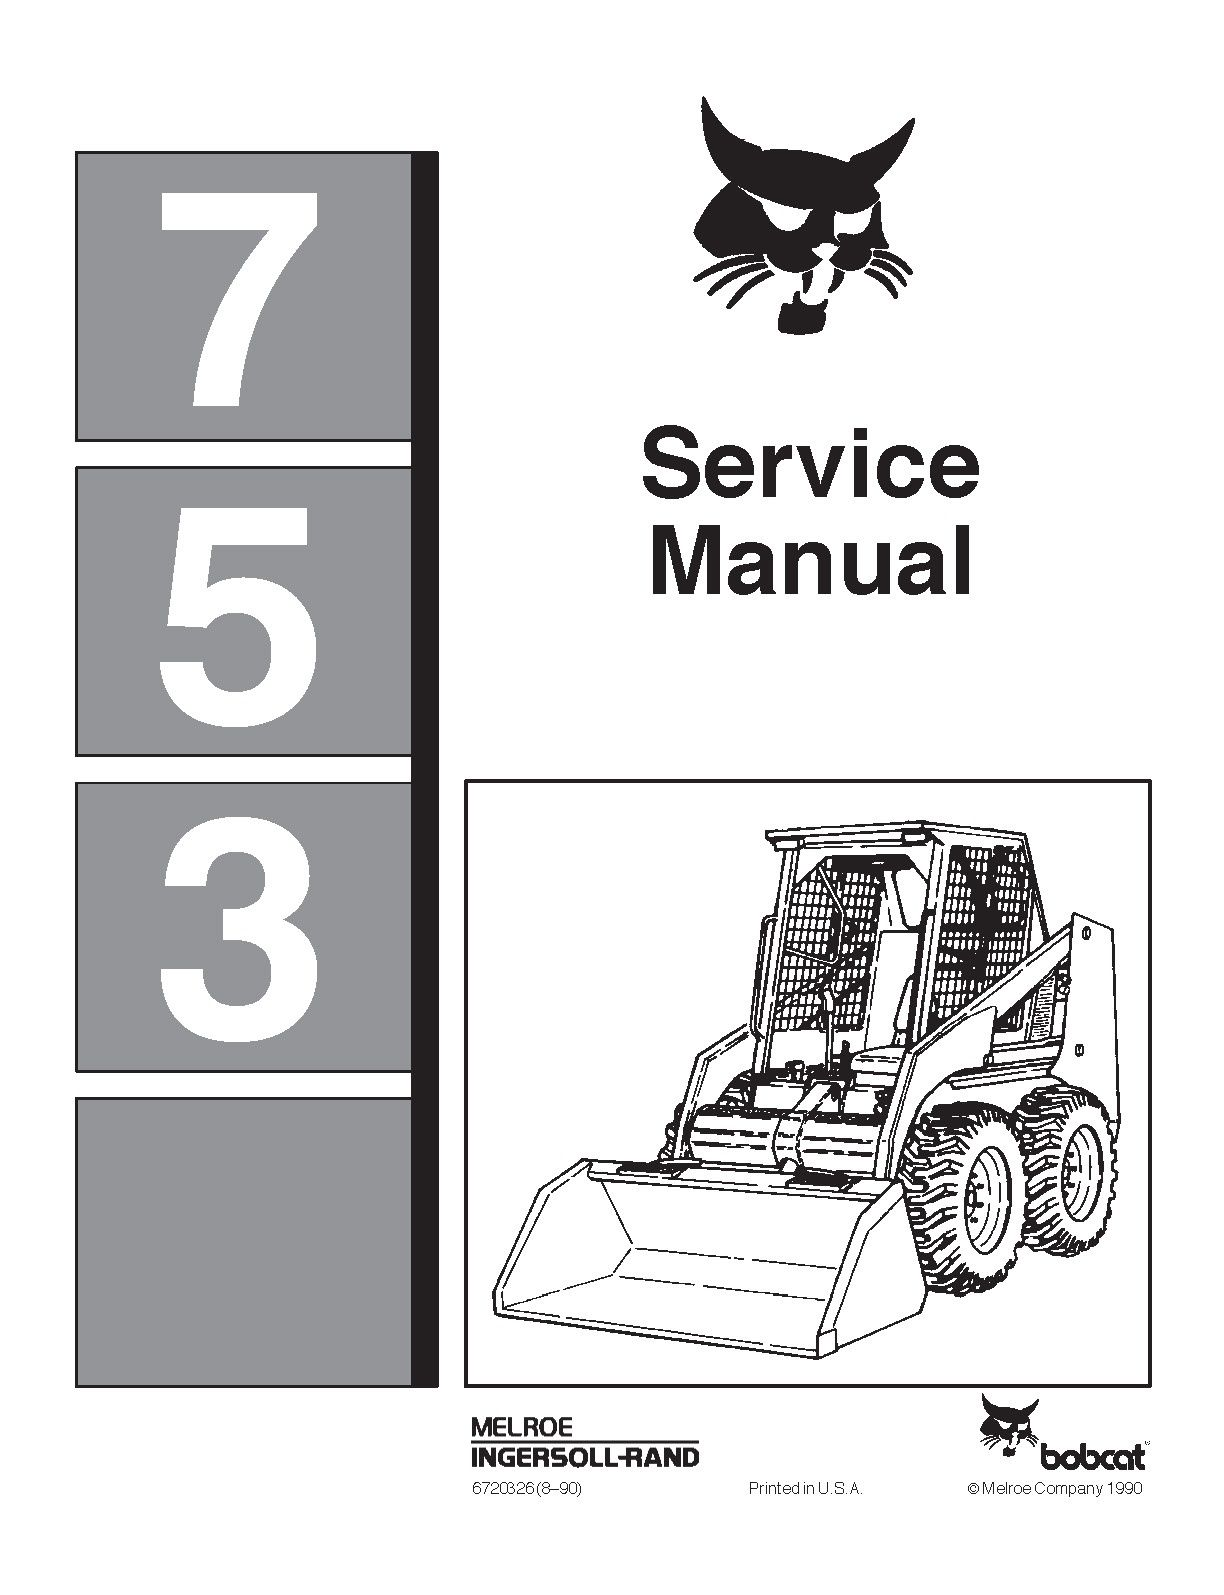 hight resolution of bobcat 753 skid steer wiring diagram wiring diagram data site bobcat 753 starter wiring diagram bobcat 753 wiring diagram